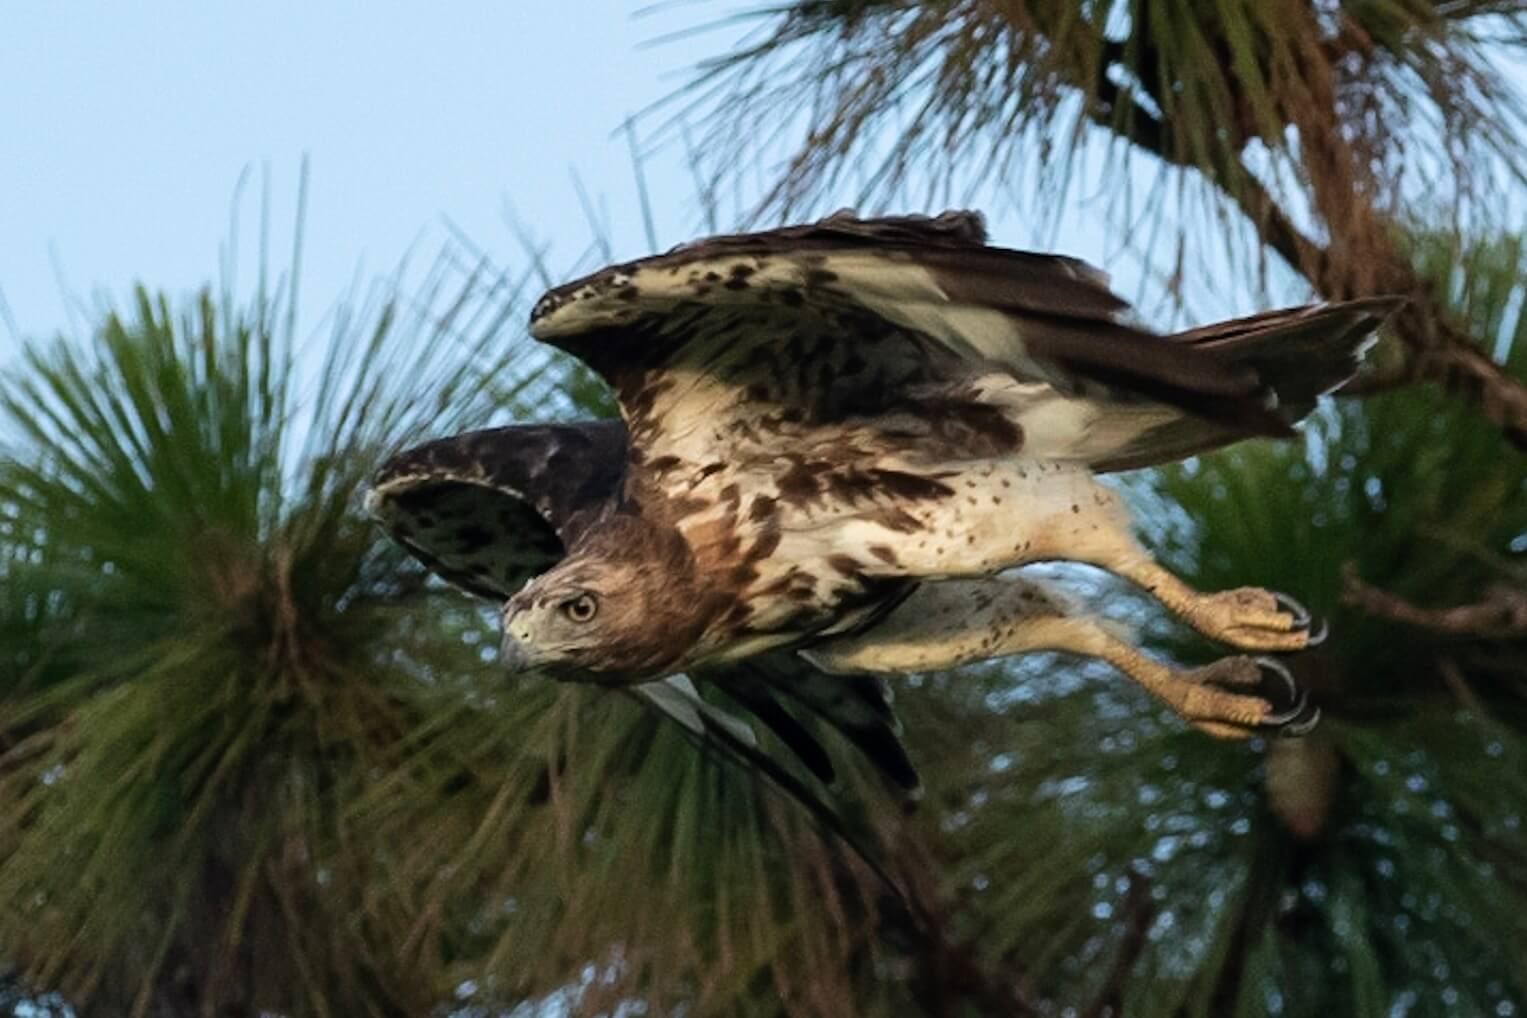 In the Image Wildlife Photography Juvenile Neighboring Eagle